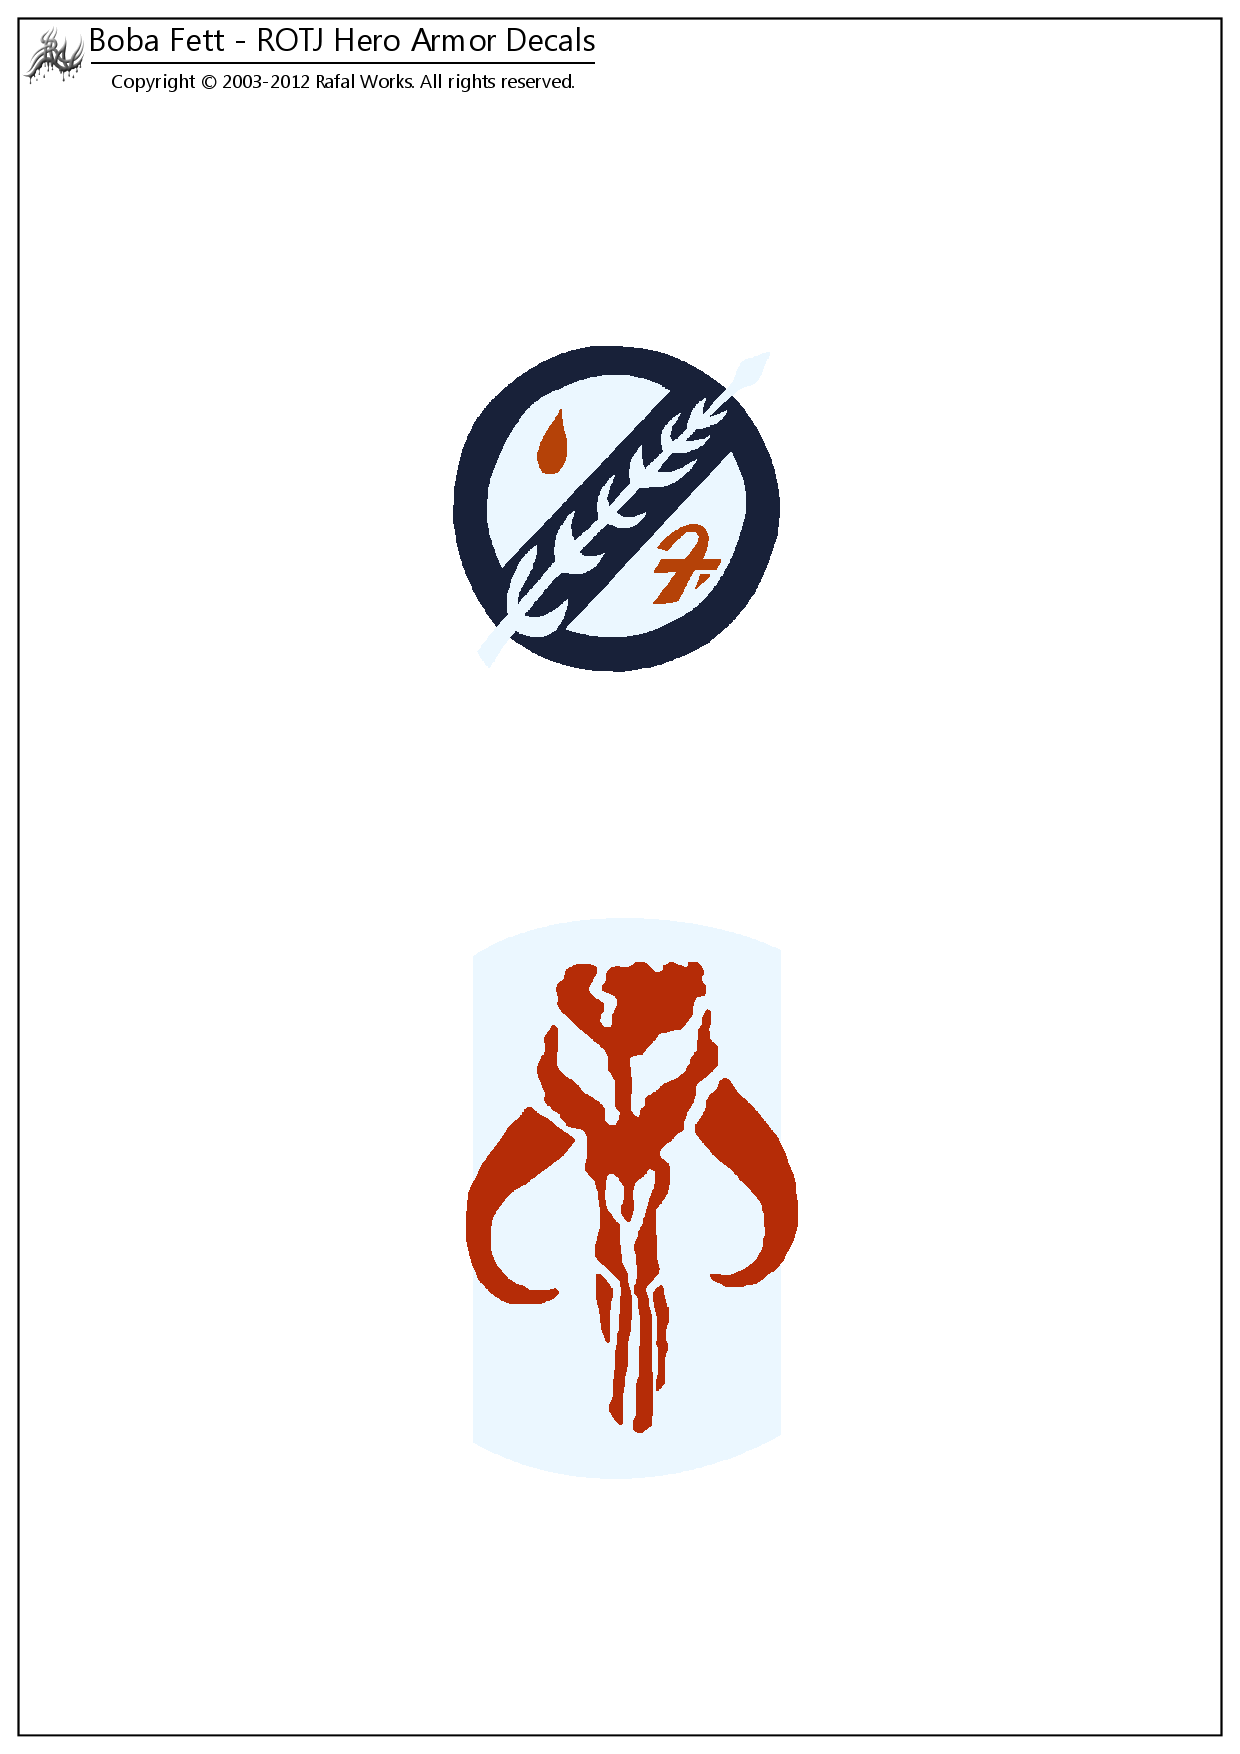 ROTJ Armor Decals A4.png